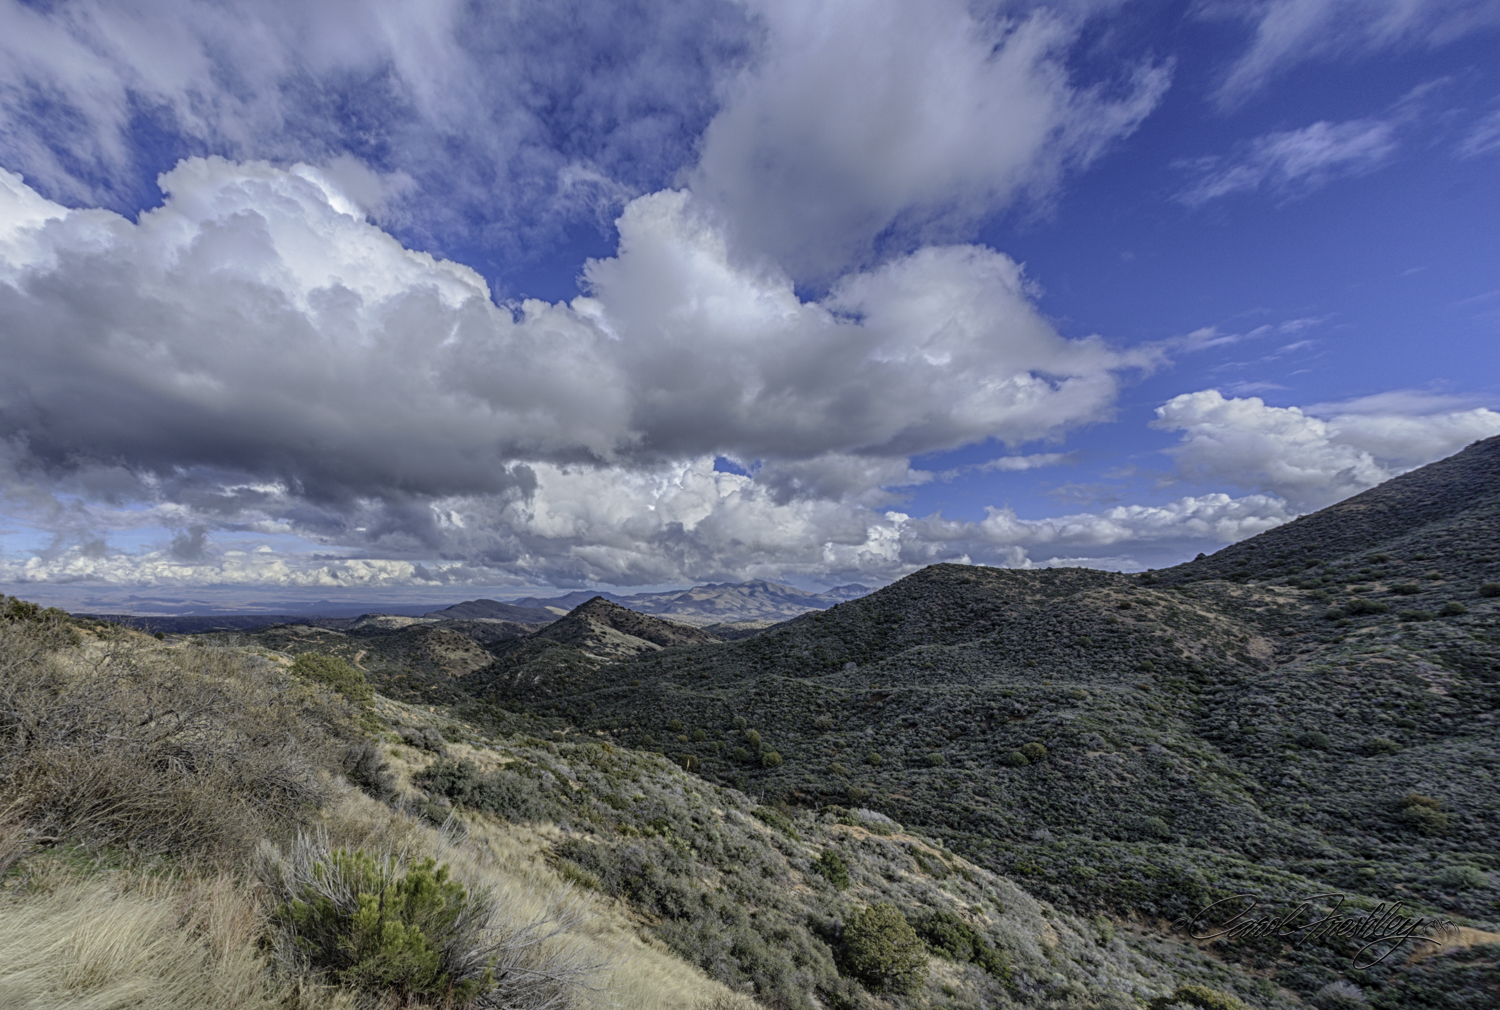 Taken from a point that is called Top of the World. Used my 15mm Sigma fisheye for this very wide shot.